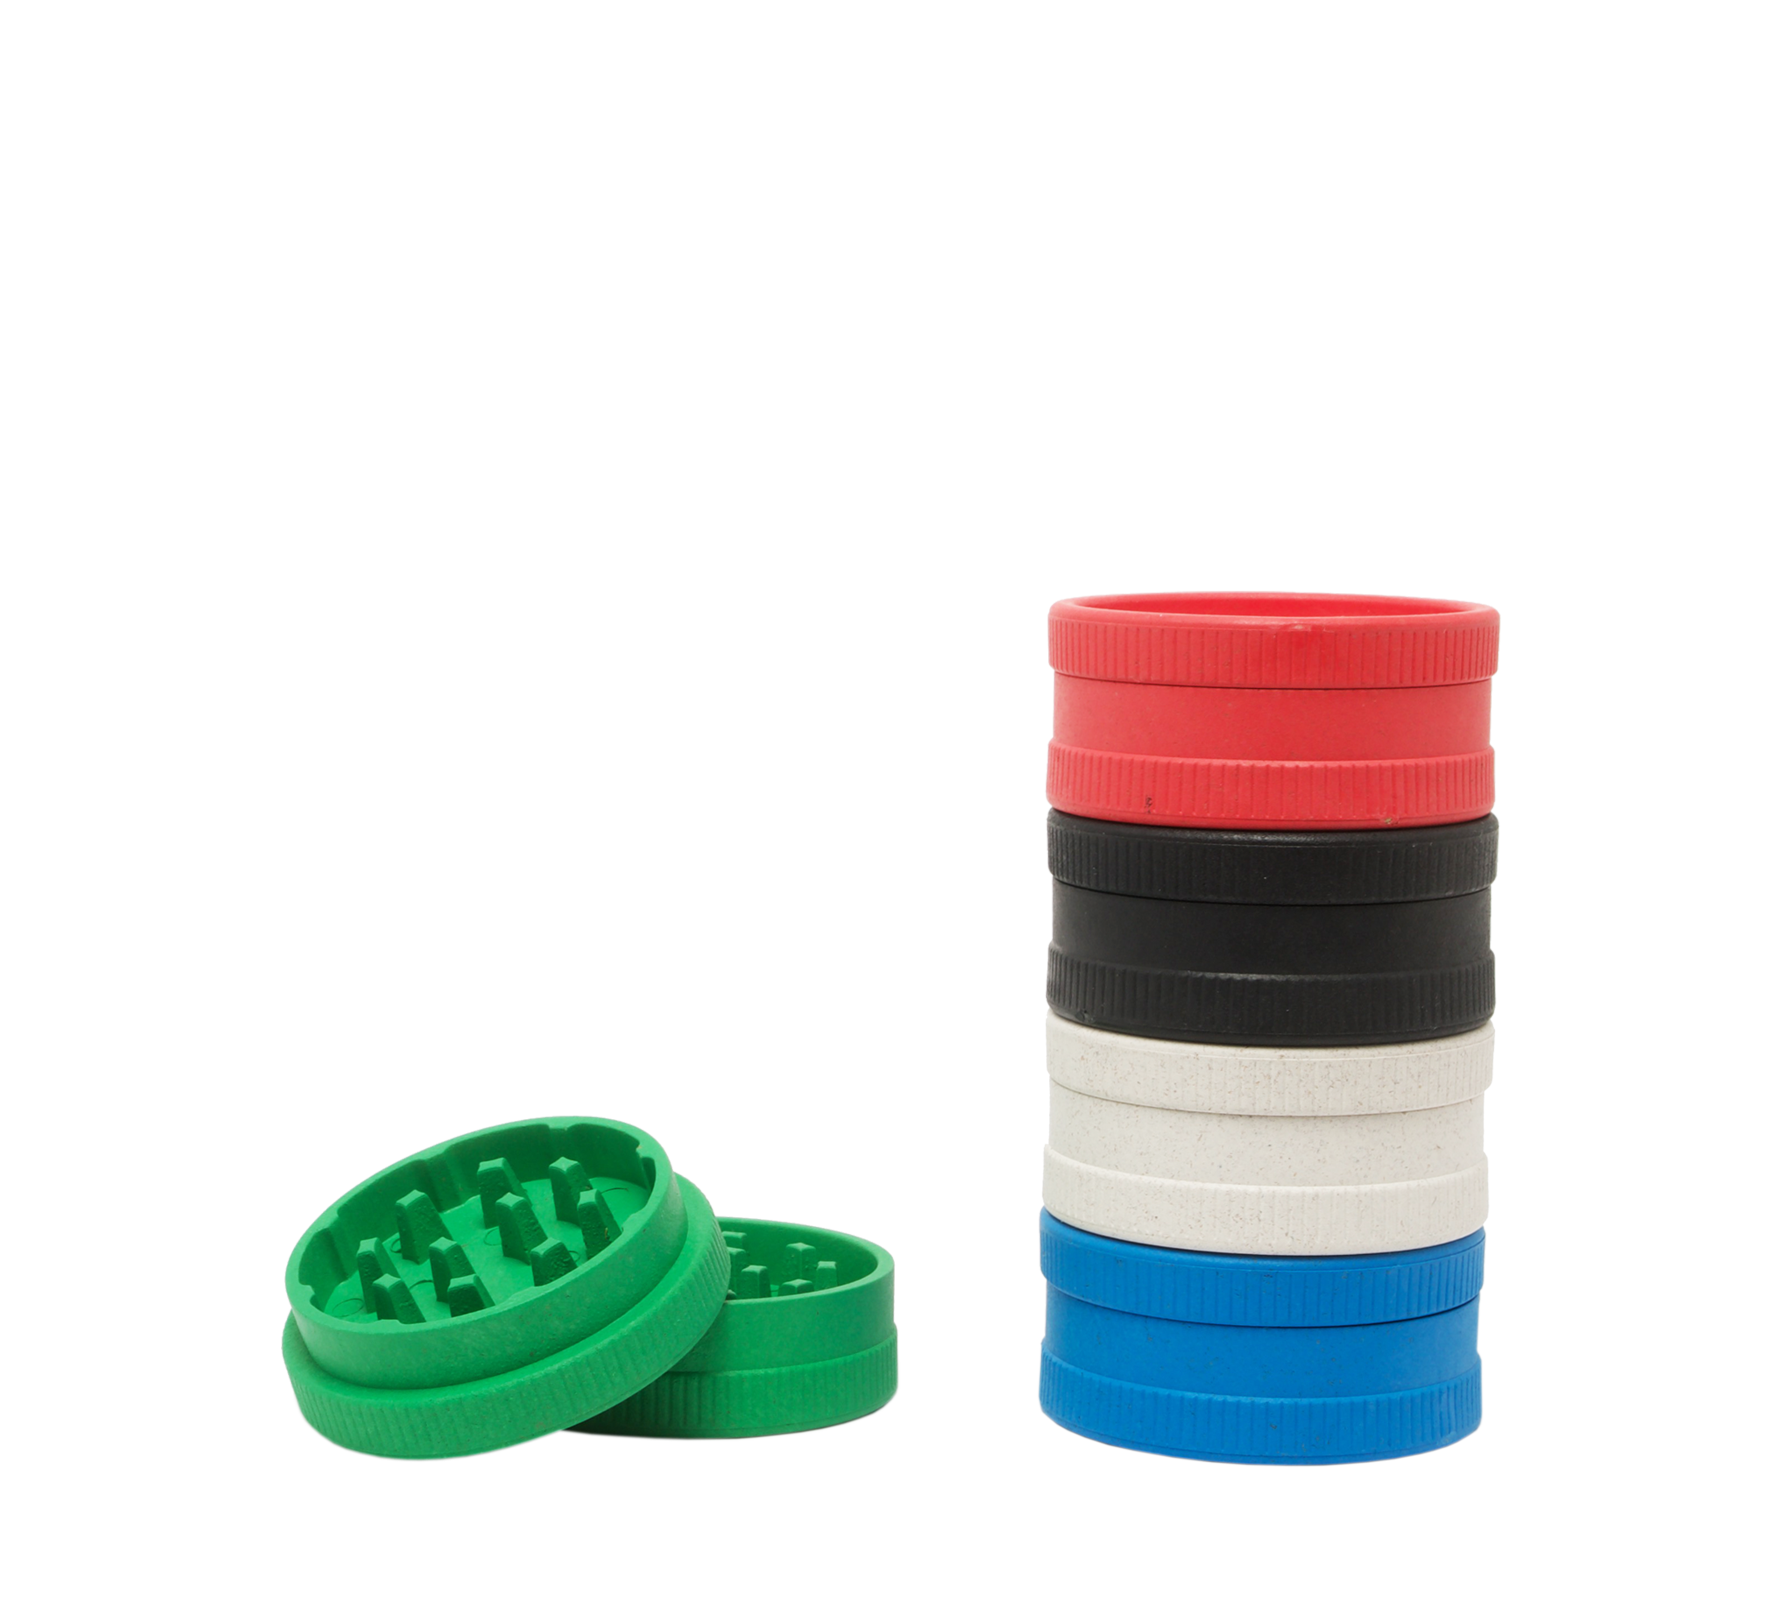 Santa Cruz Shredder x Hemp Grinder - 2 Piece